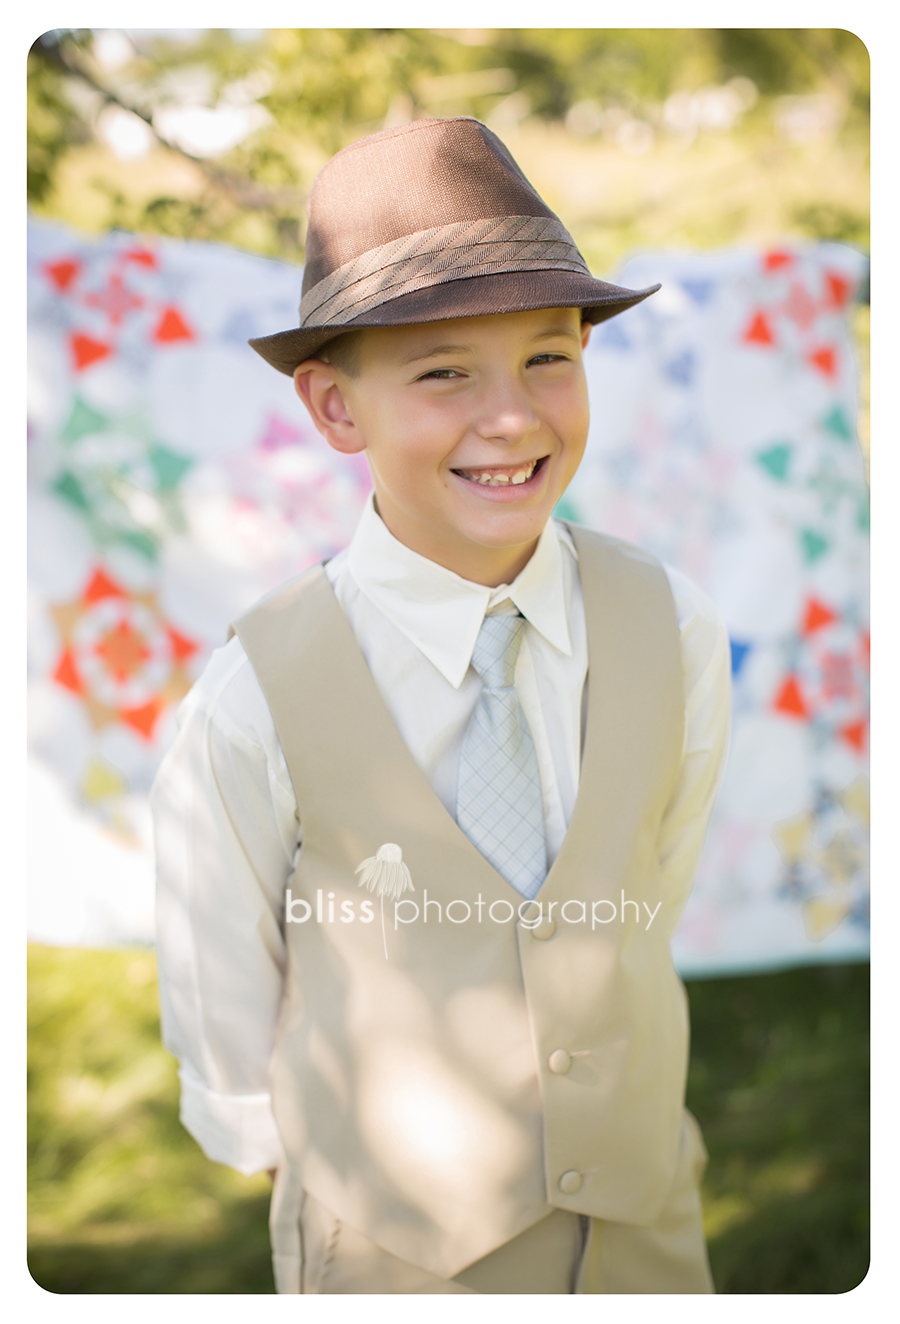 bliss photography-6521